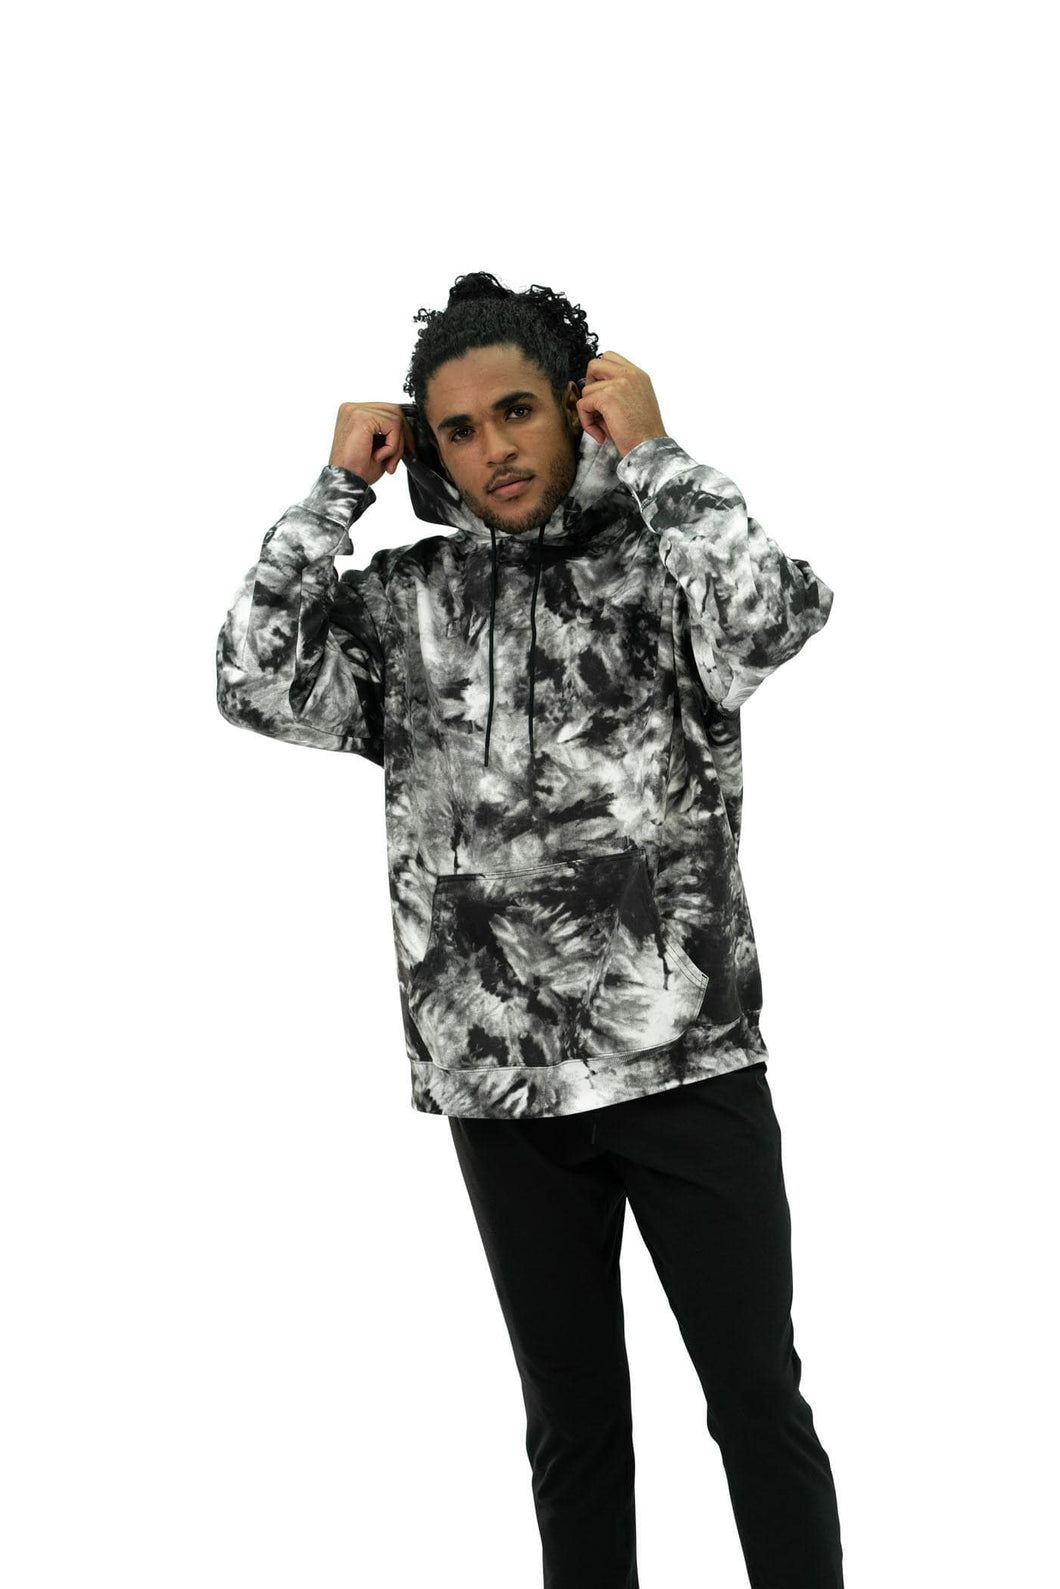 Balance Athletica Crew Sweatshirt The Maker Hood - Tie Dye Midnight